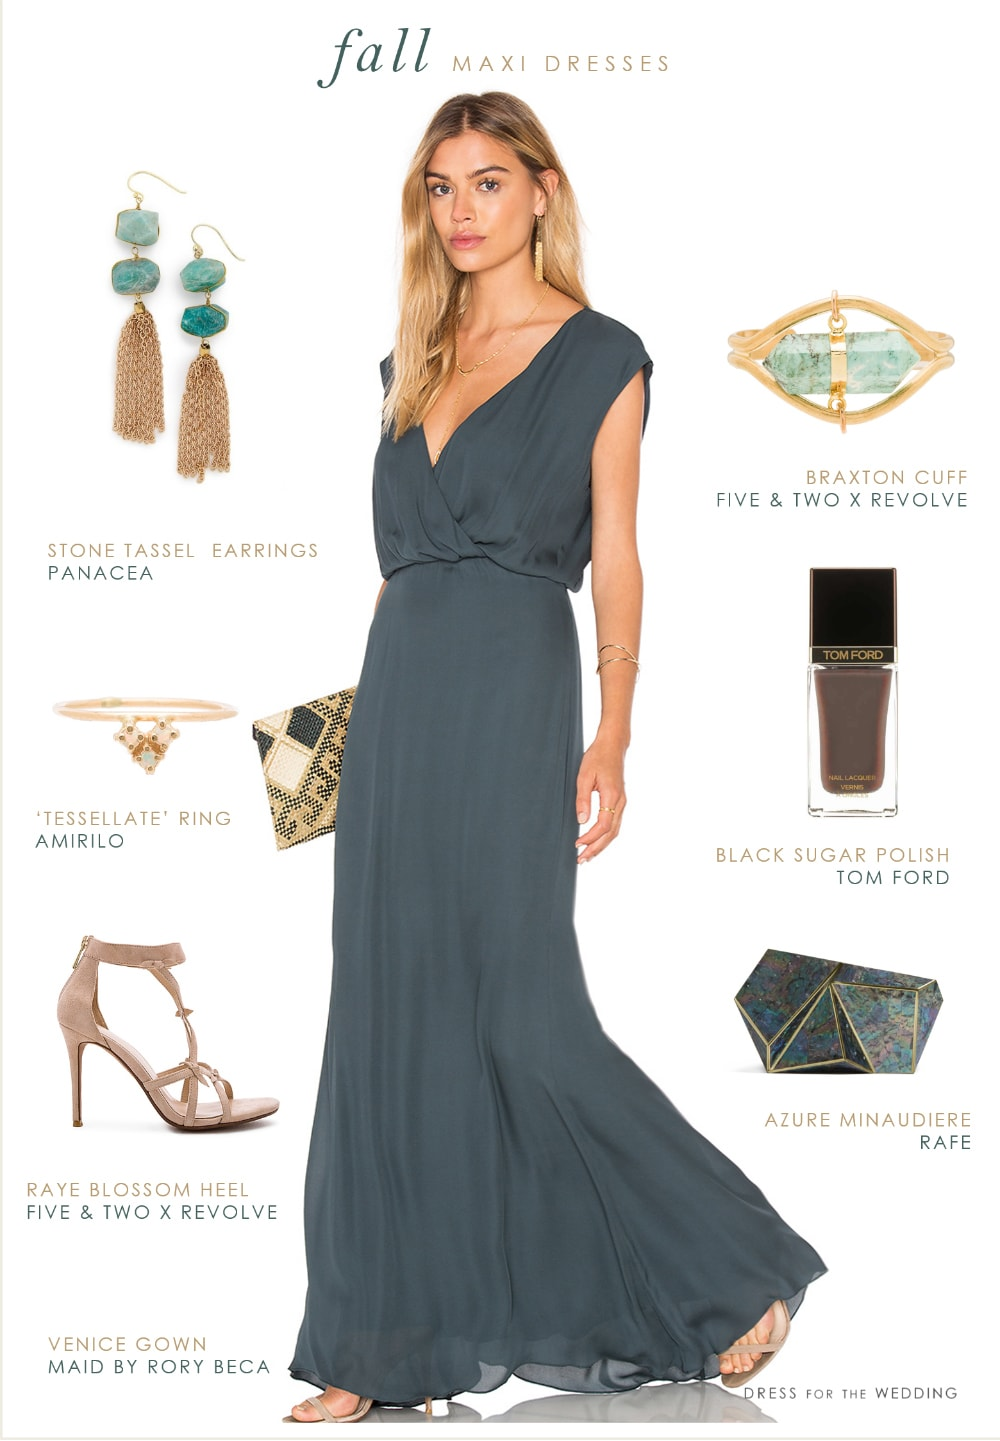 Maxi Dresses For Fall Dress For The Wedding